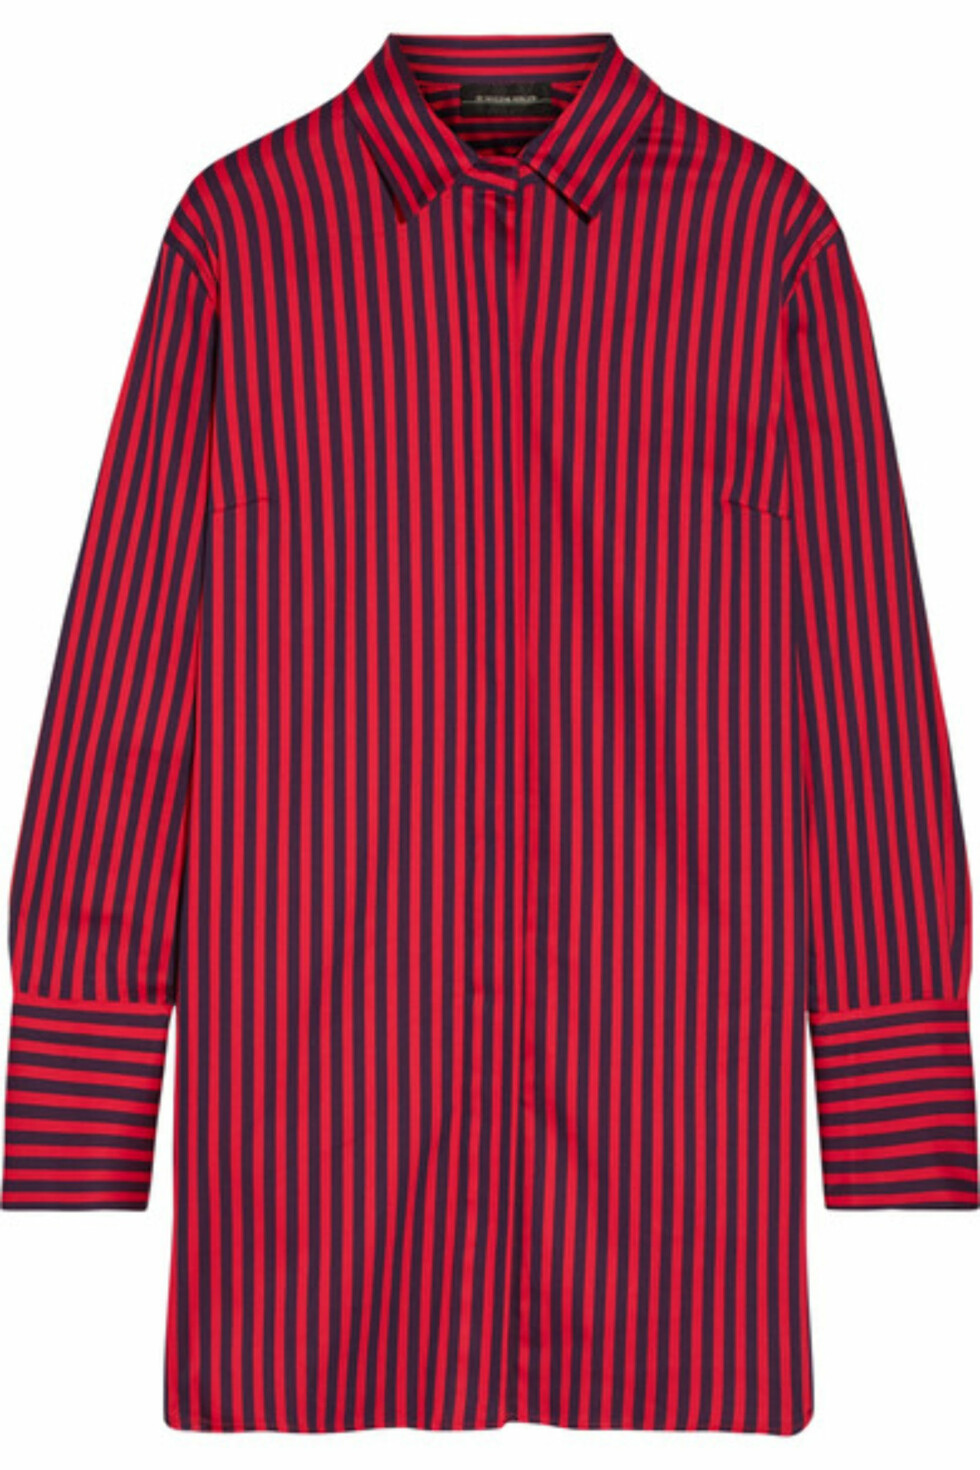 Skjorte fra By Malene Birger via Net-a-porter.com |2060,-| https://www.net-a-porter.com/no/en/product/930910/by_malene_birger/frincamma-striped-stretch-cotton-shirt